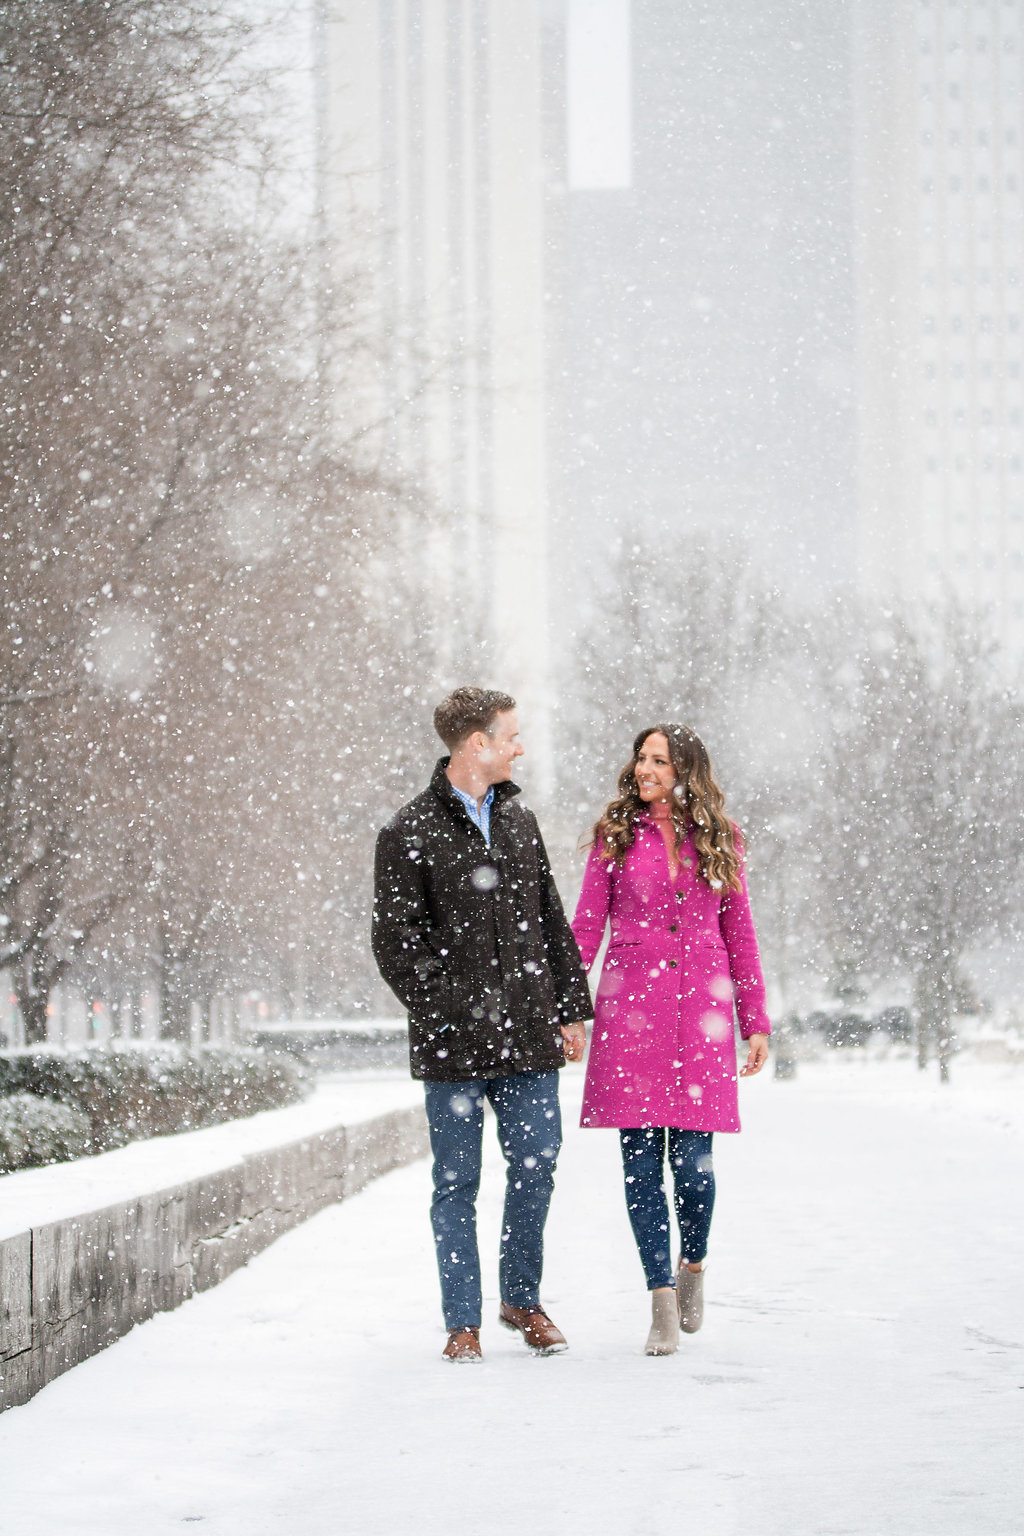 Millennium Park Chicago Illinois Winter Engagement Photographer Taylor Ingles 12